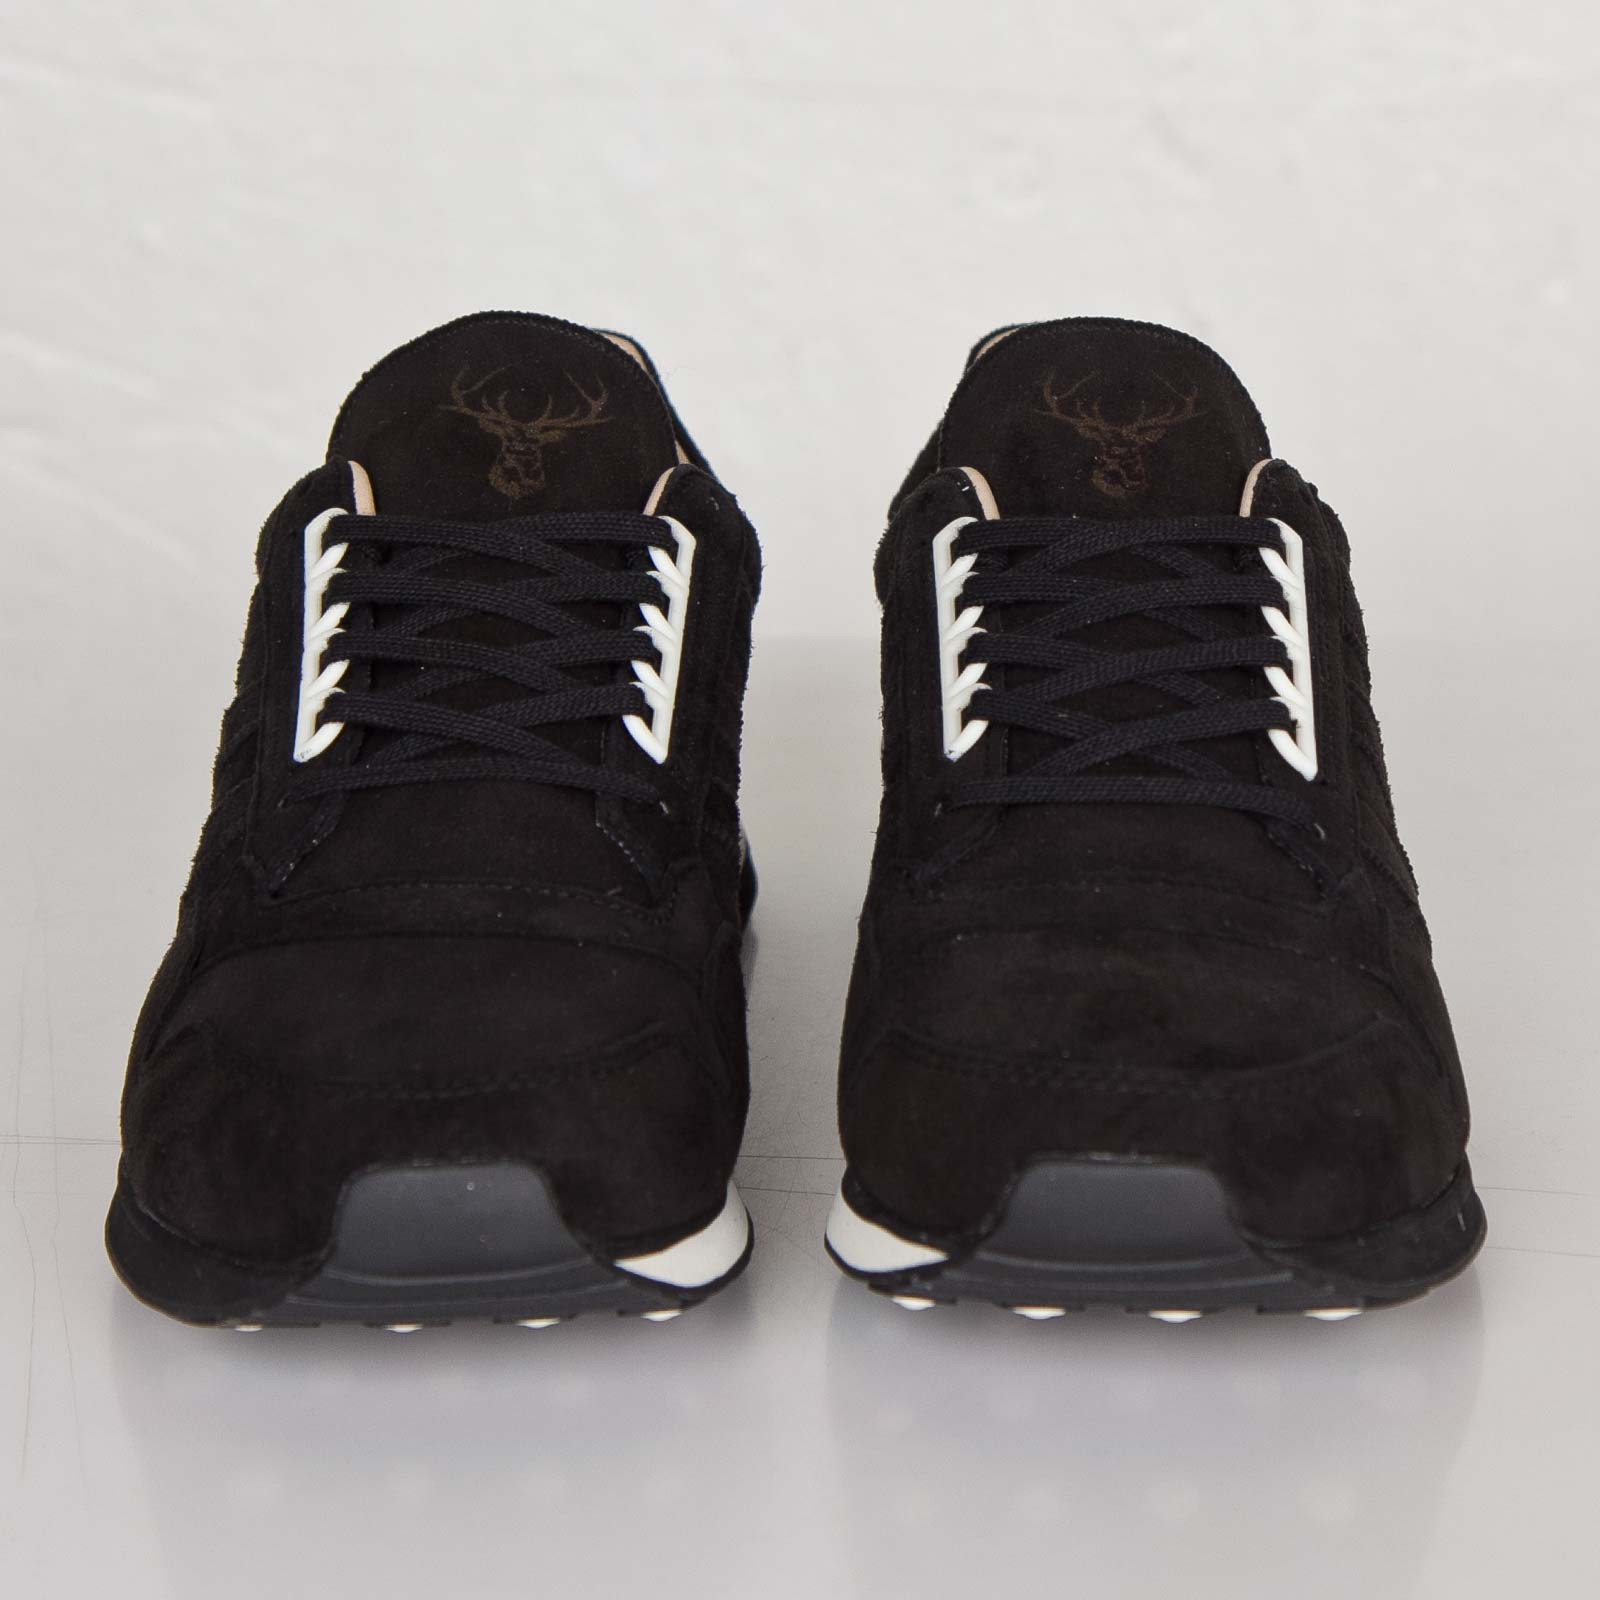 c67a6a8d9 adidas ZX 500 OG Made In Germany - B25802 - Sneakersnstuff ...